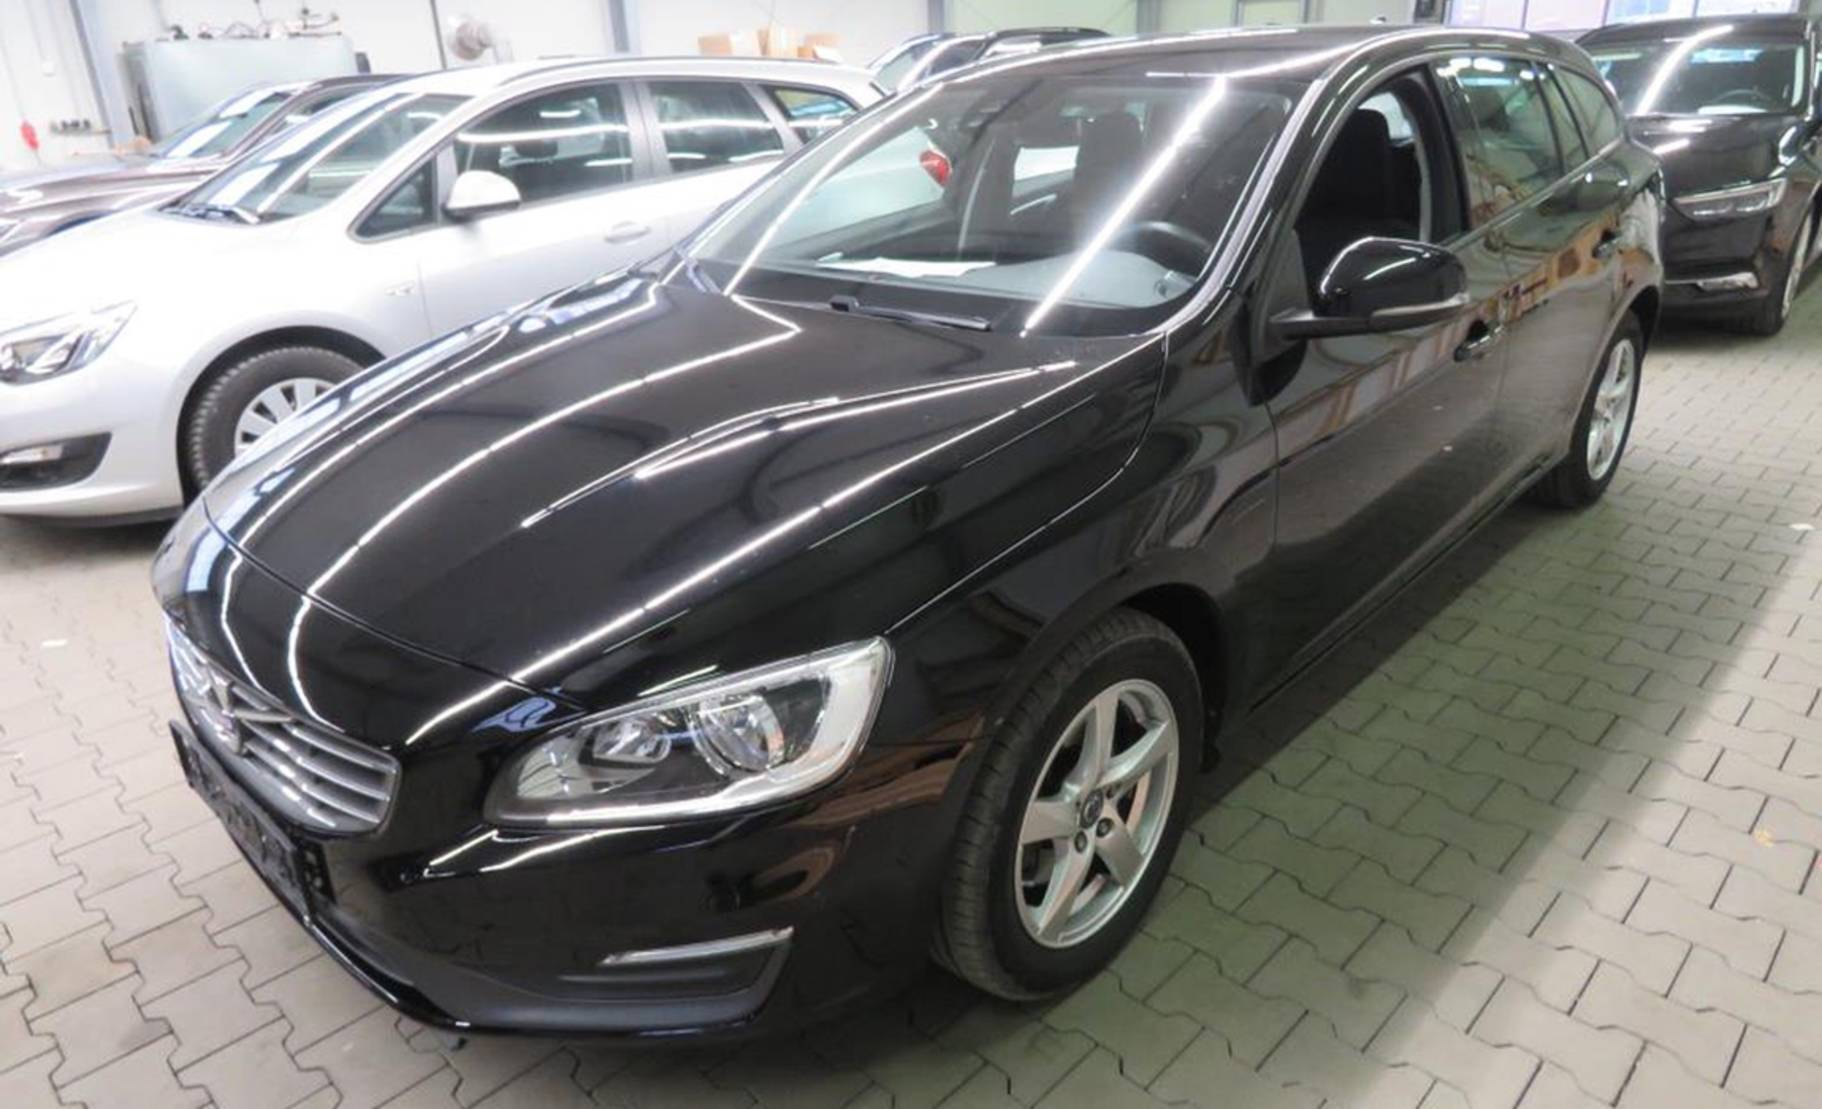 Volvo V60 D4 Business Edition (538198) detail1